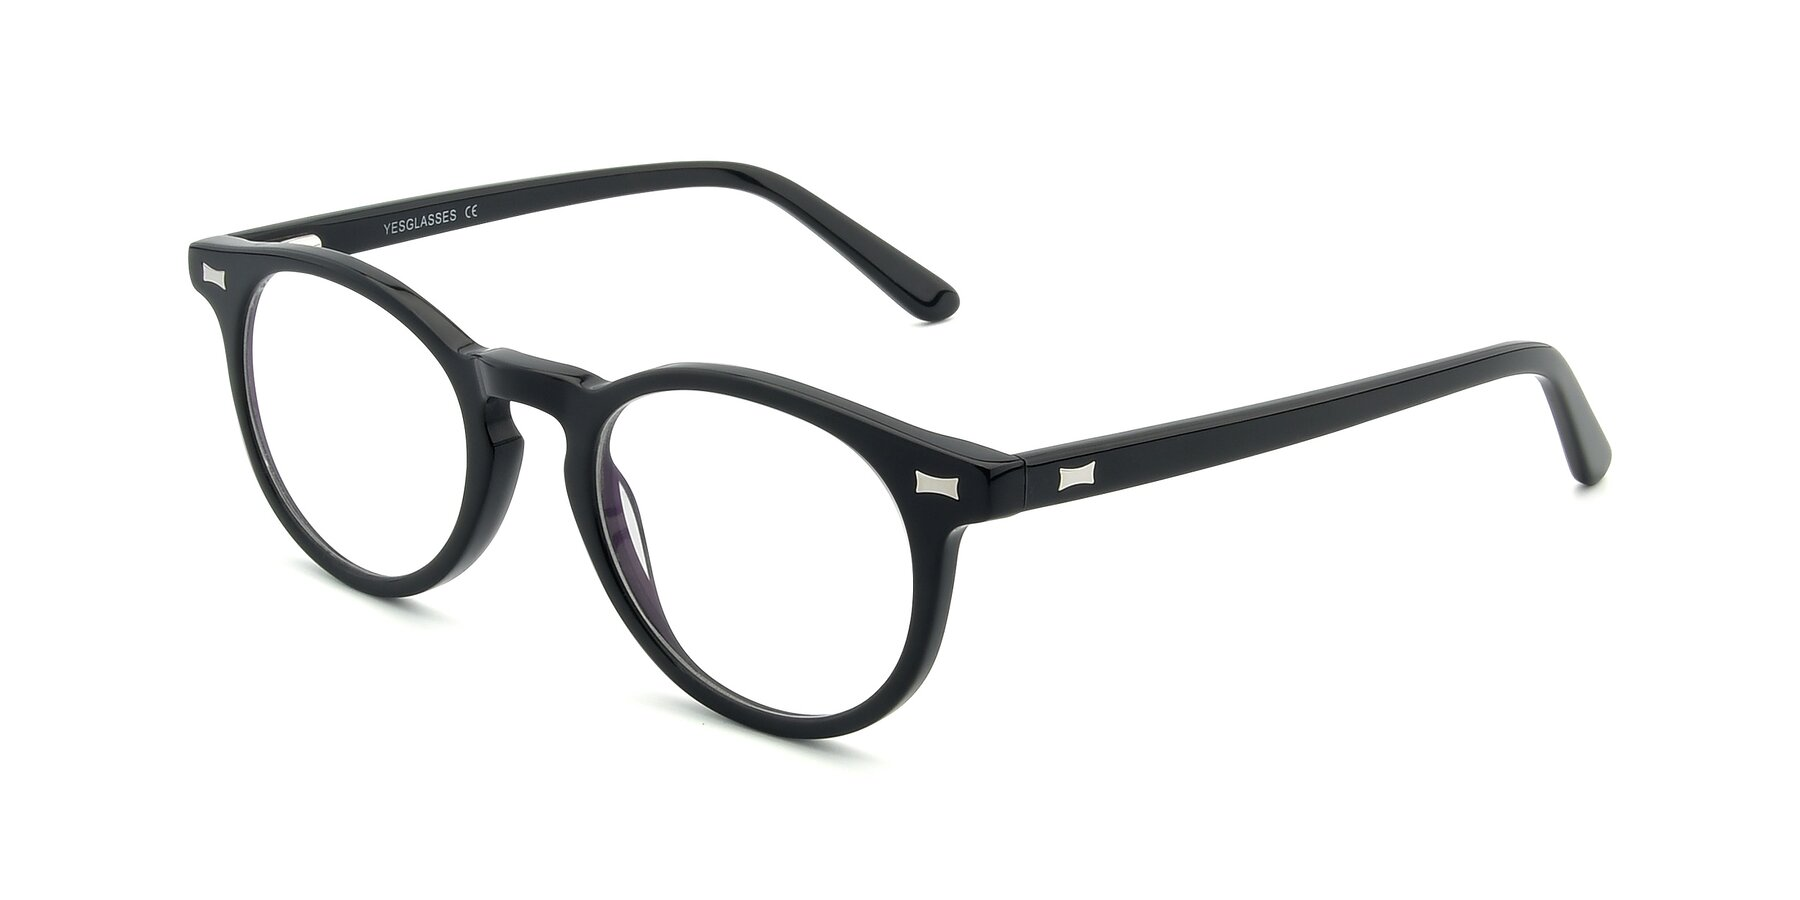 Angle of 17330 in Black with Clear Eyeglass Lenses